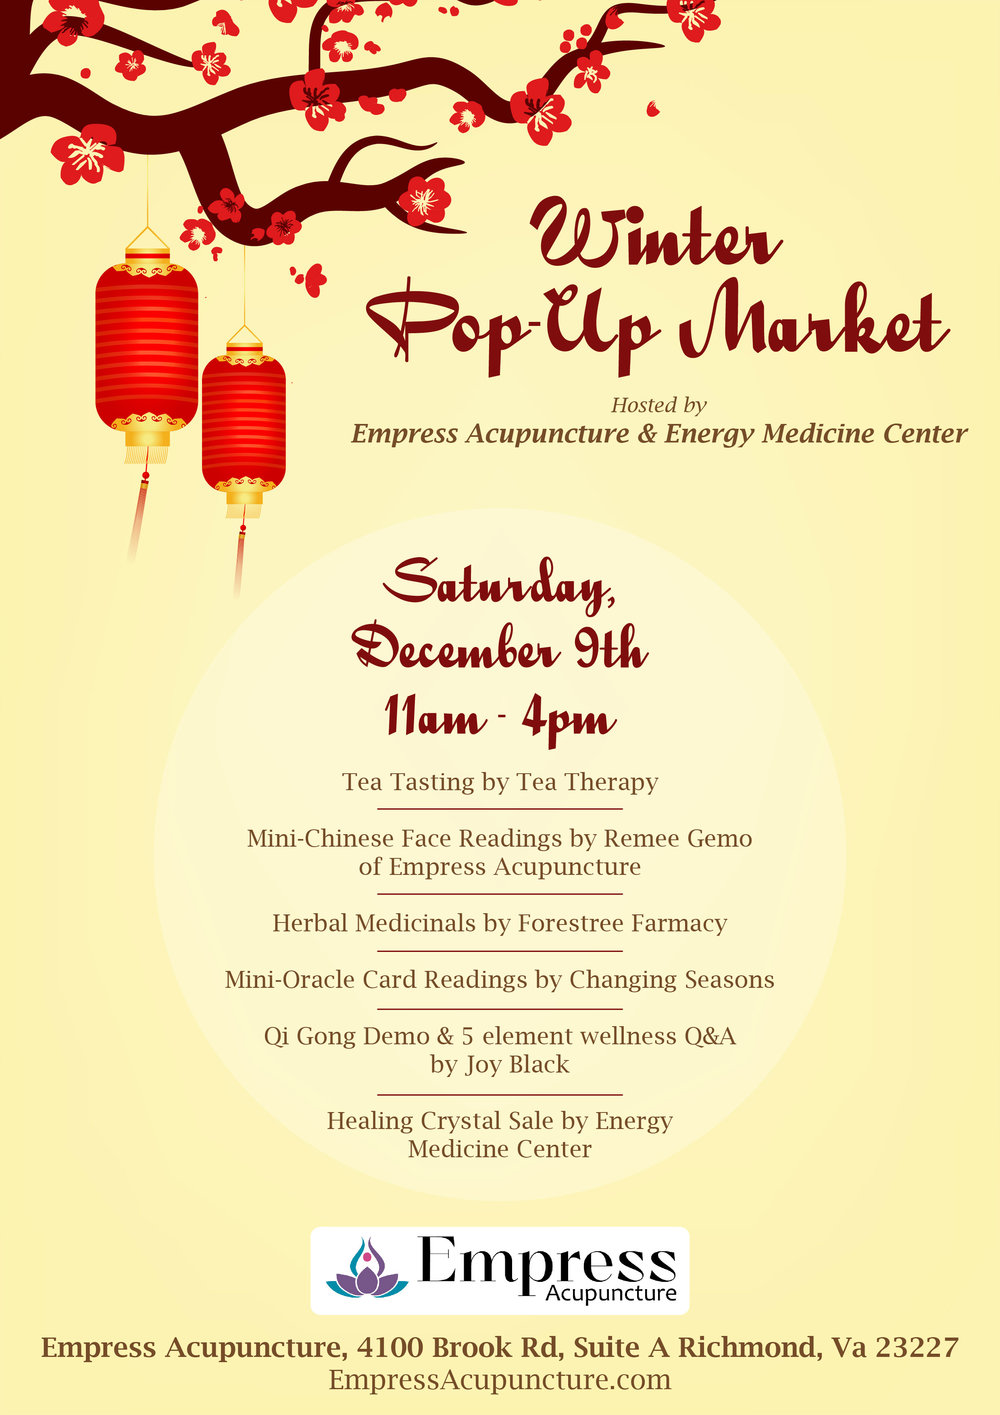 empress-acupuncture-richmond-va-pop-up-market.jpg